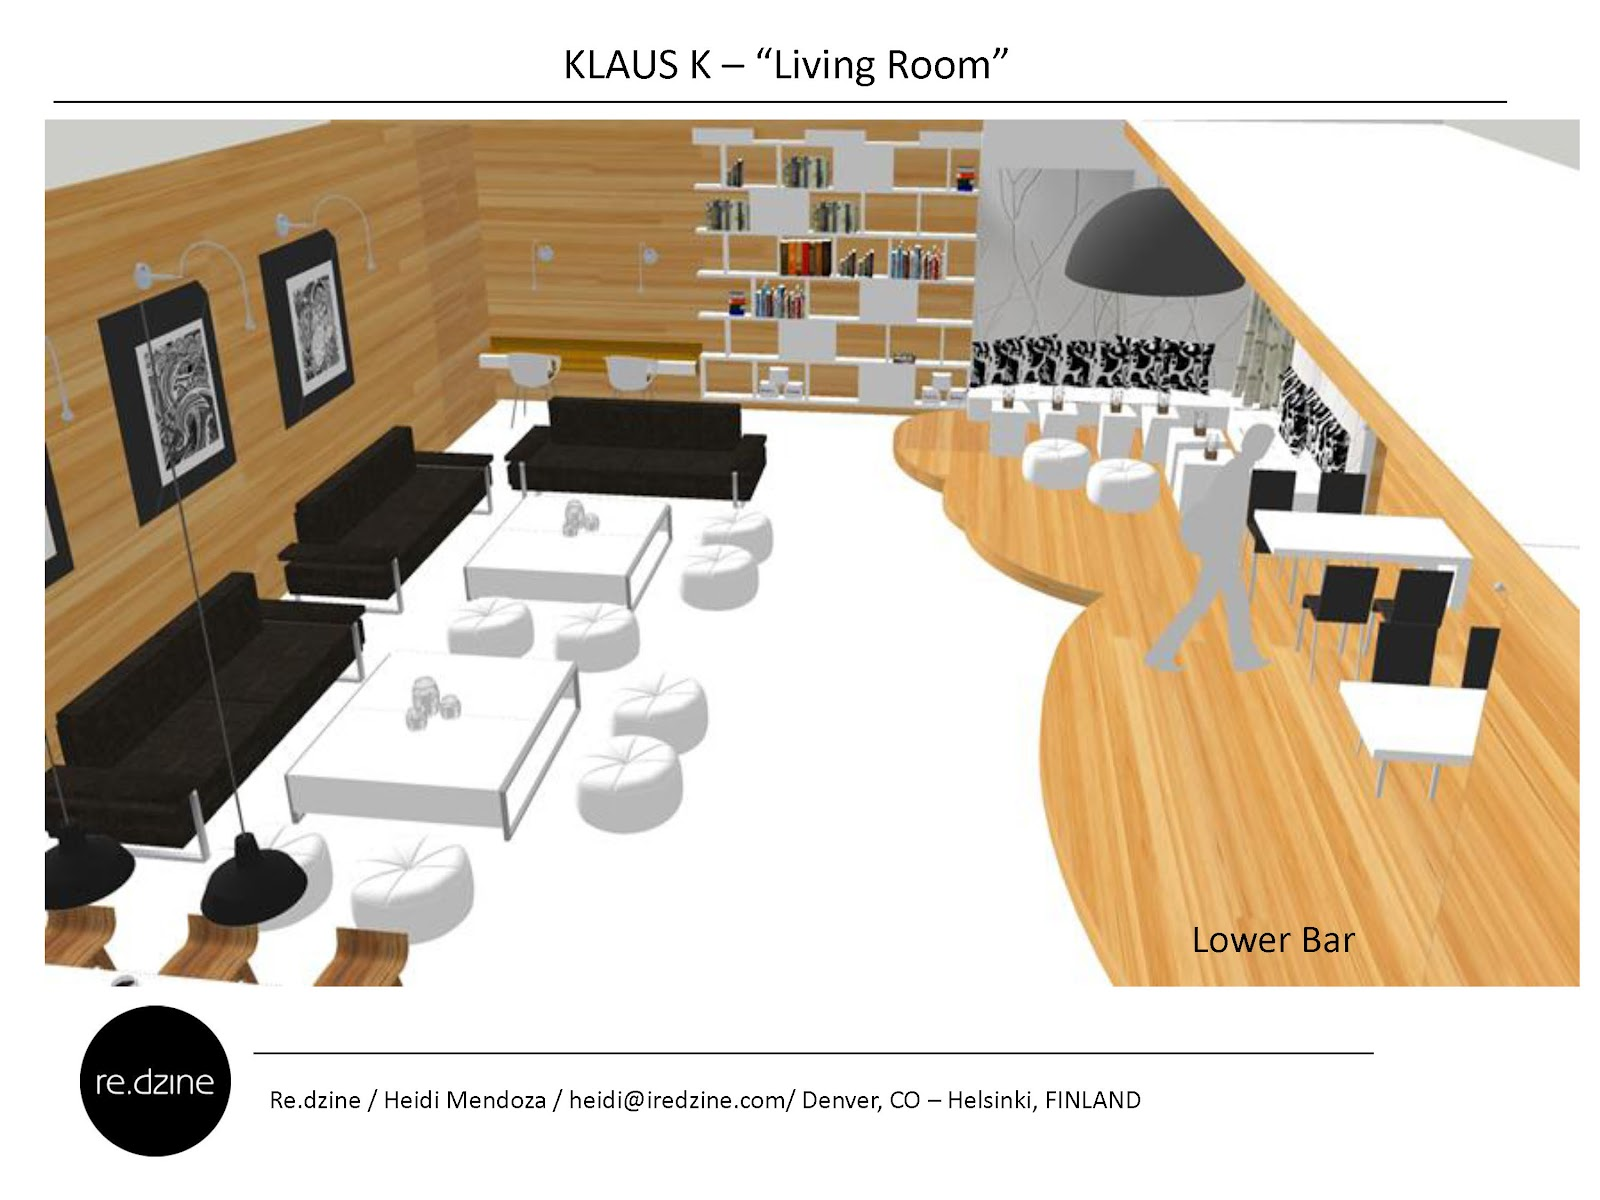 News from: Klaus K, Helsinki - The Living Room Co-Creation Project